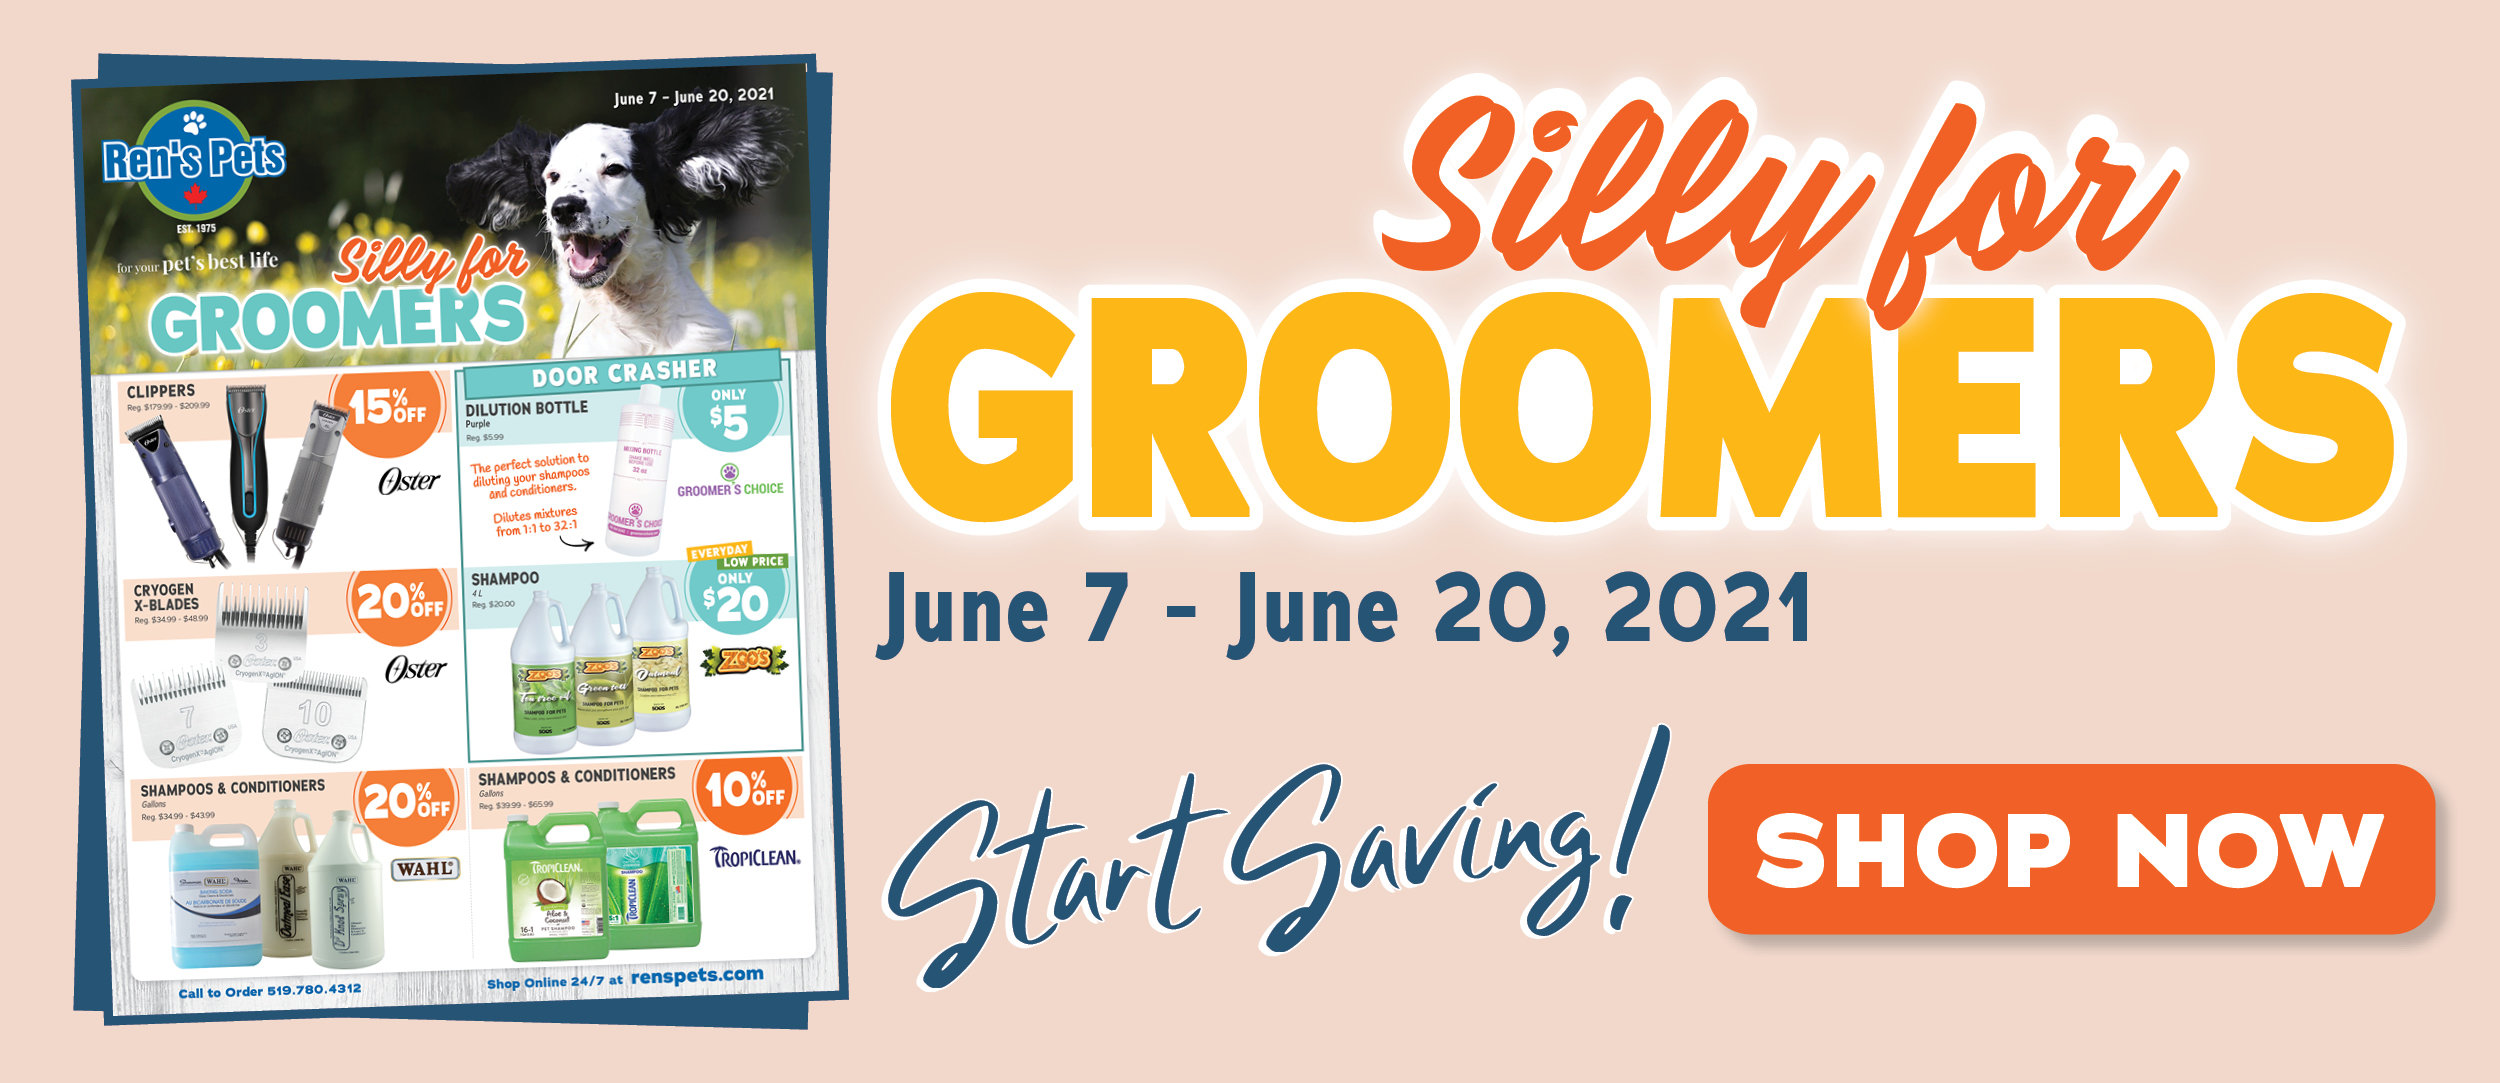 June Grooming - Silly for Groomers